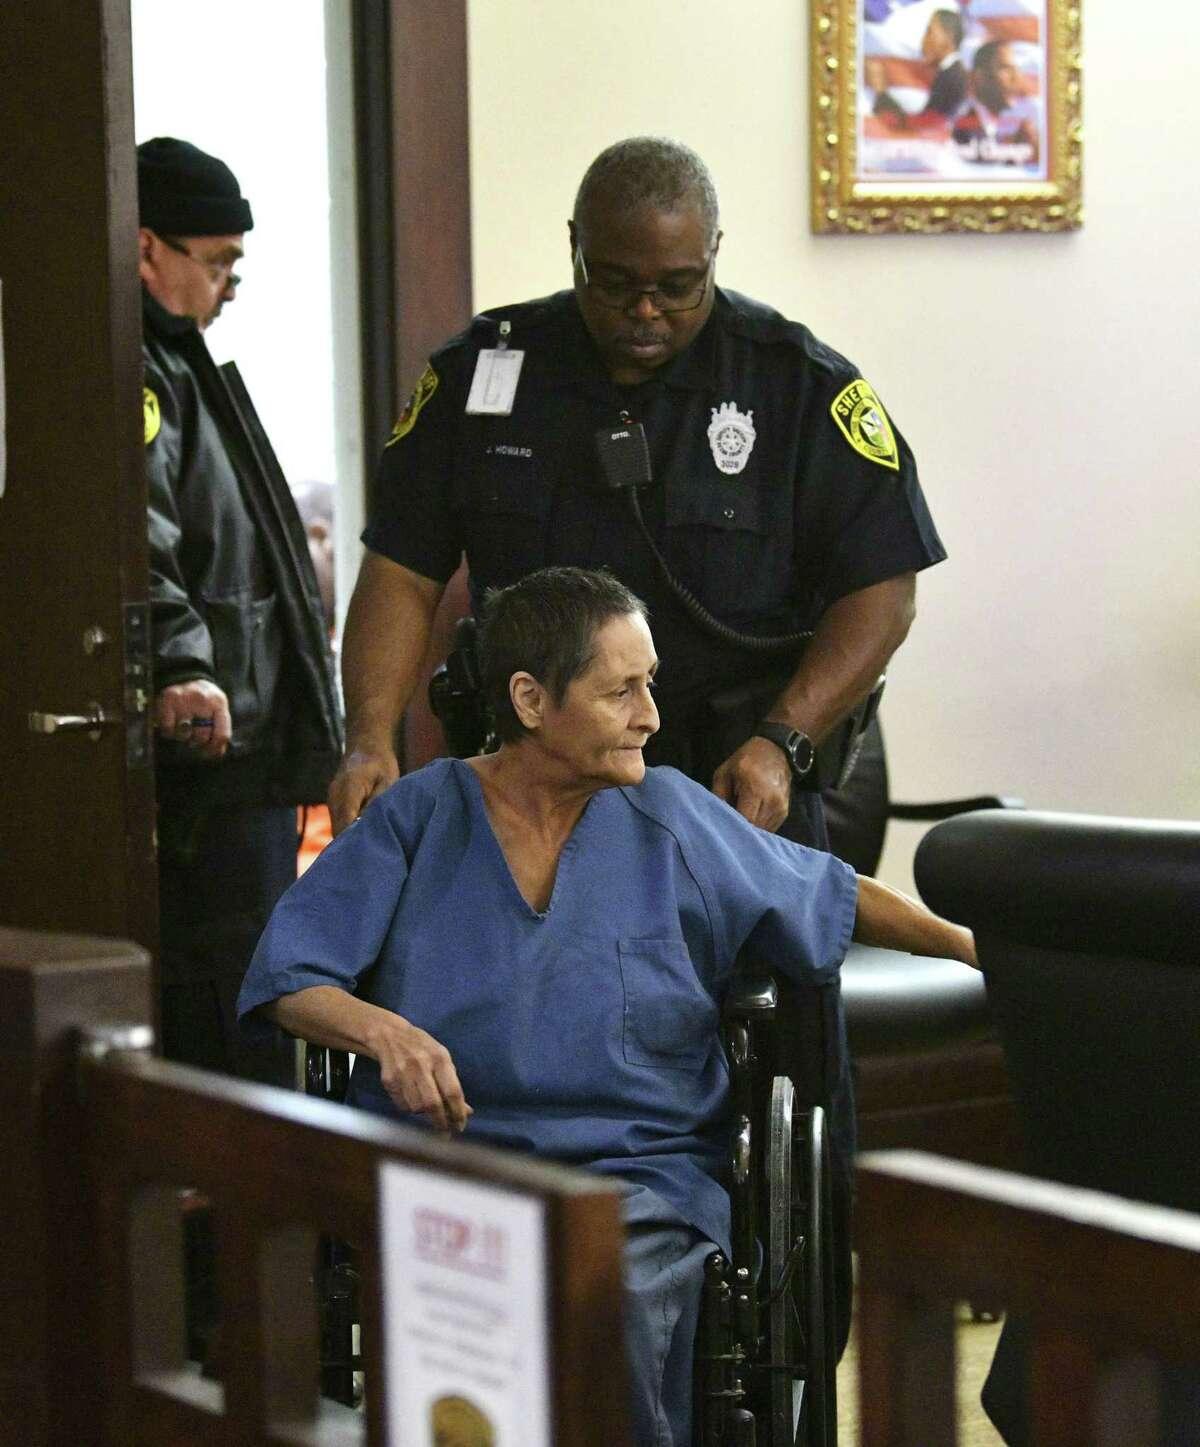 Beatrice Sampayo, 64, is accused of tampering with evidence related to the death of her 8-month-old grandson, King Jay Davila.